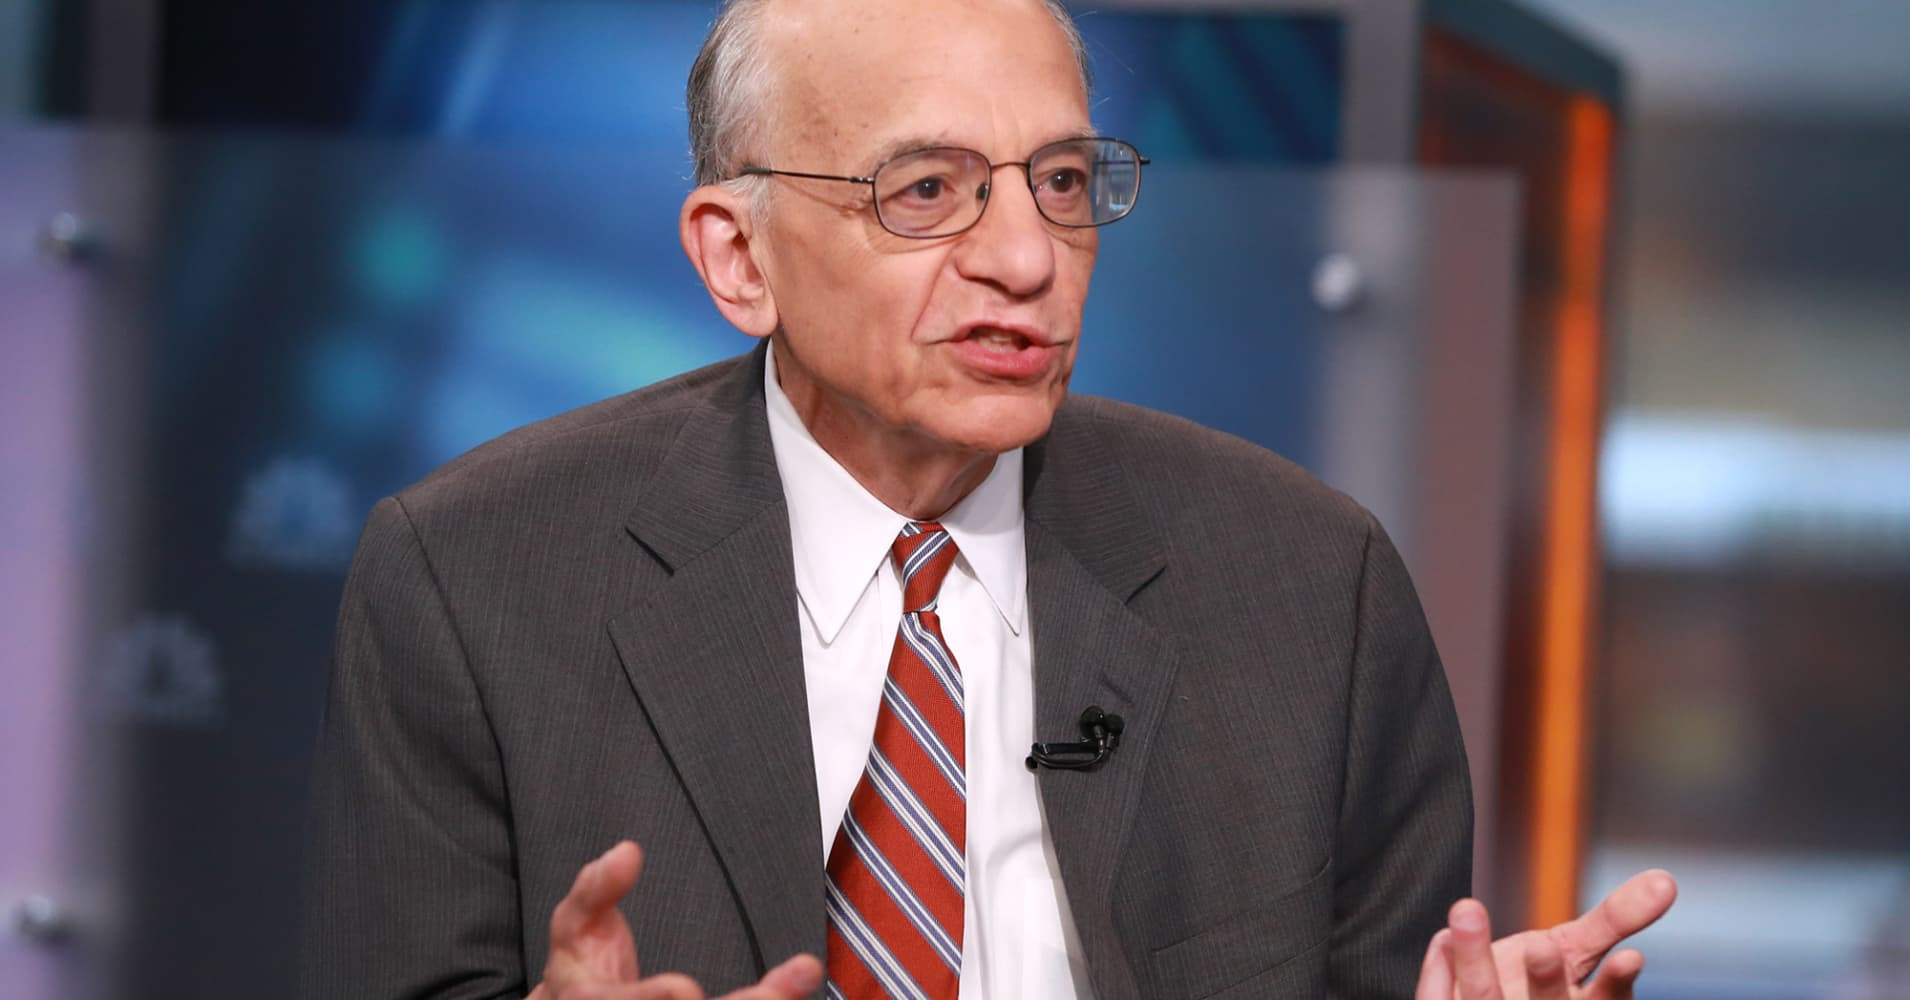 Wharton's Jeremy Siegel says stocks will return up to 15%: 'We could have quite a good year'